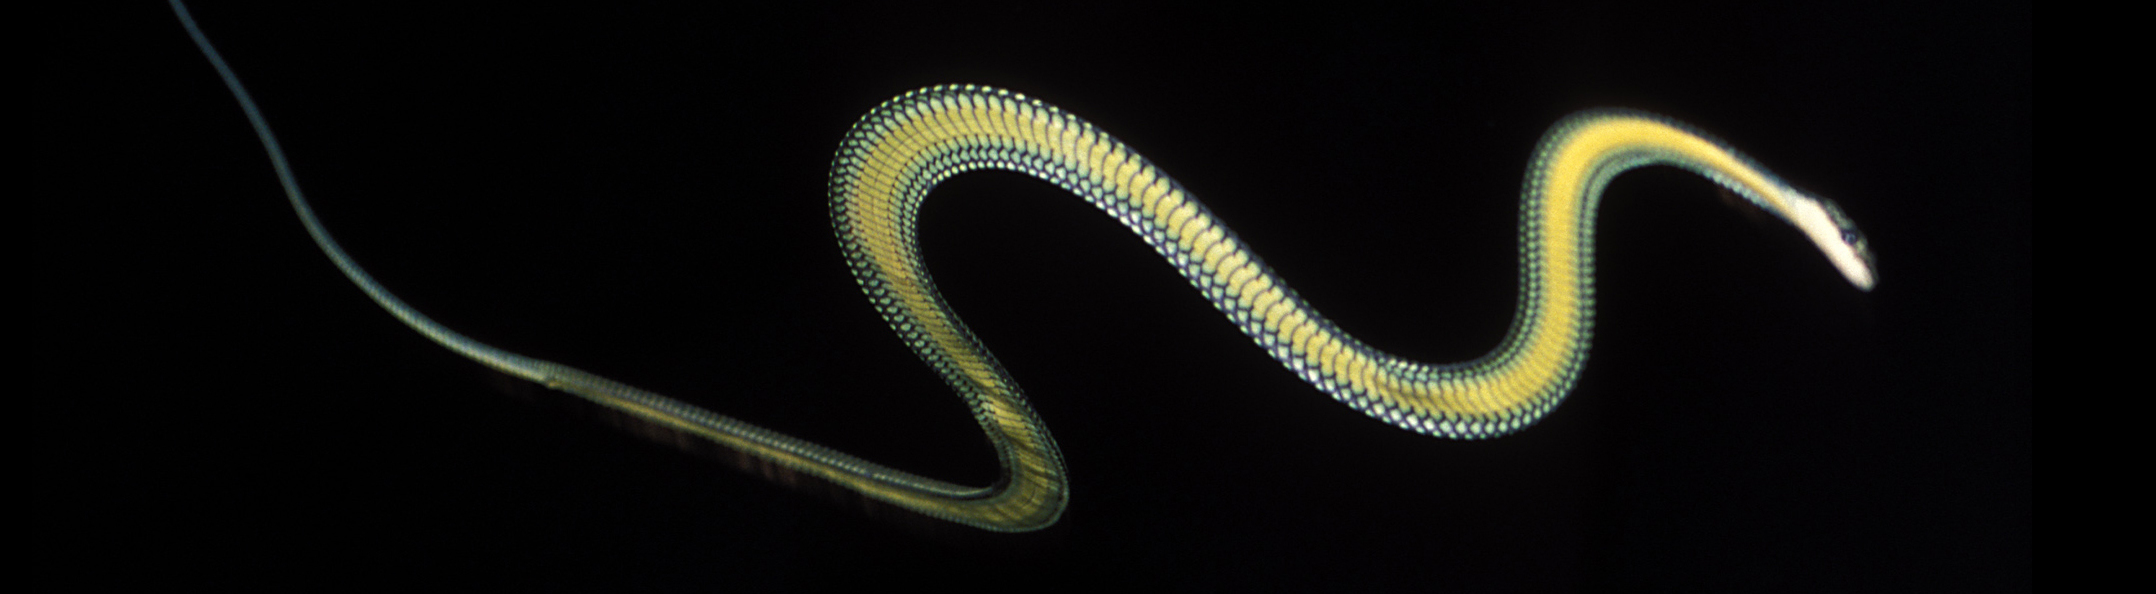 The Elegant Secrets Of Flying Snakes